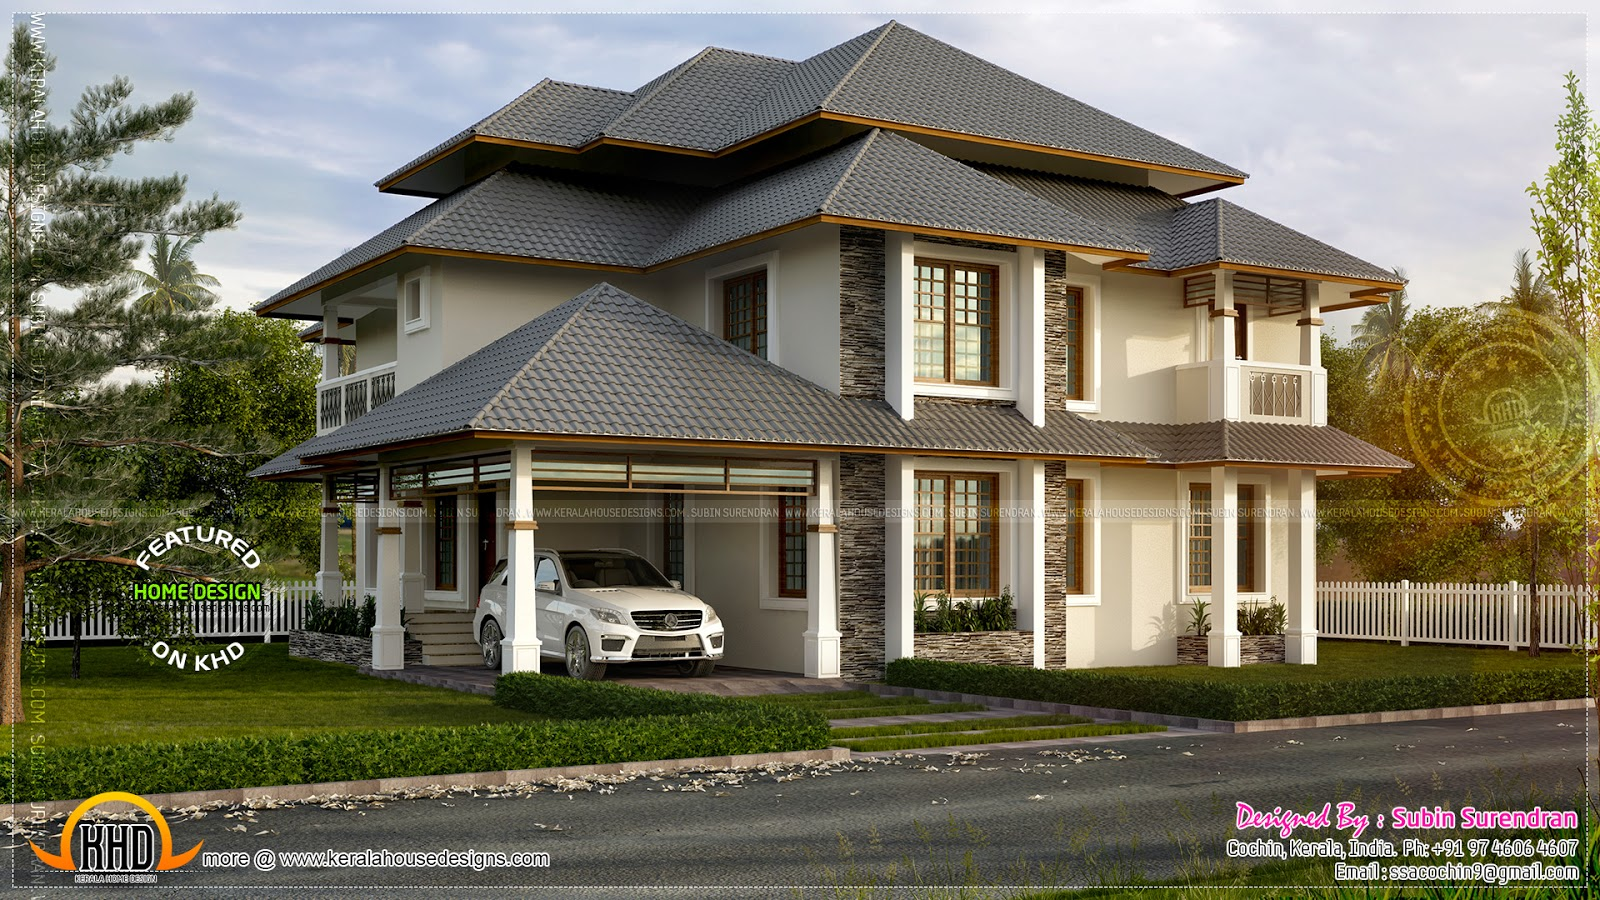 Beautiful modern  traditional mix home  Kerala home design and floor plans